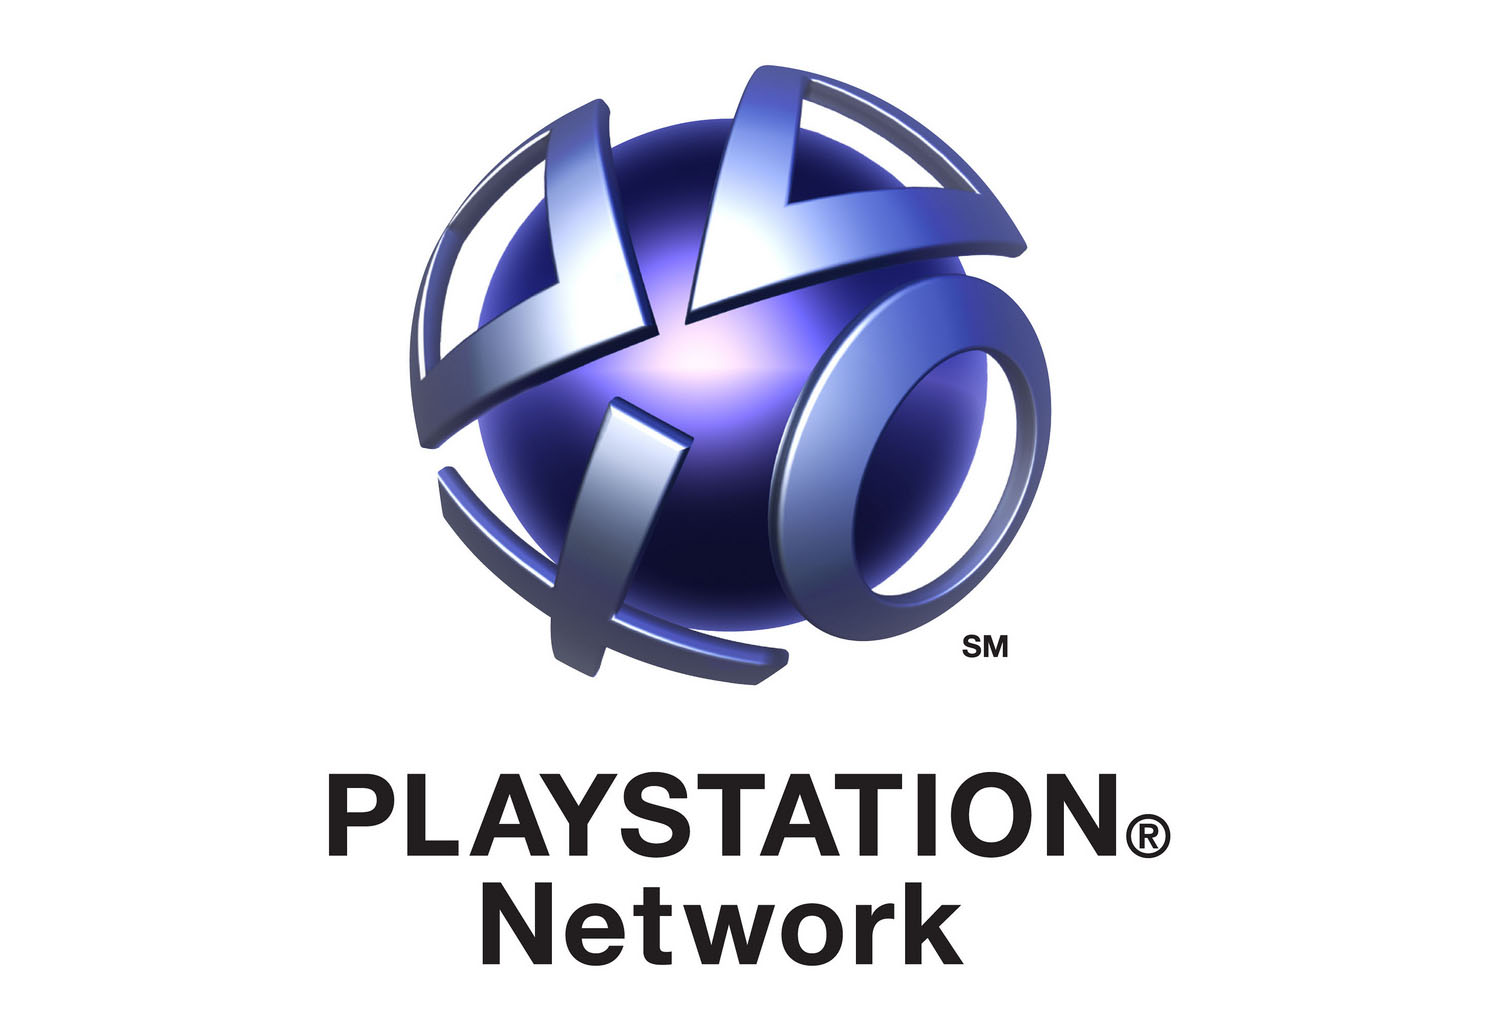 25 UK Playstation Network Card